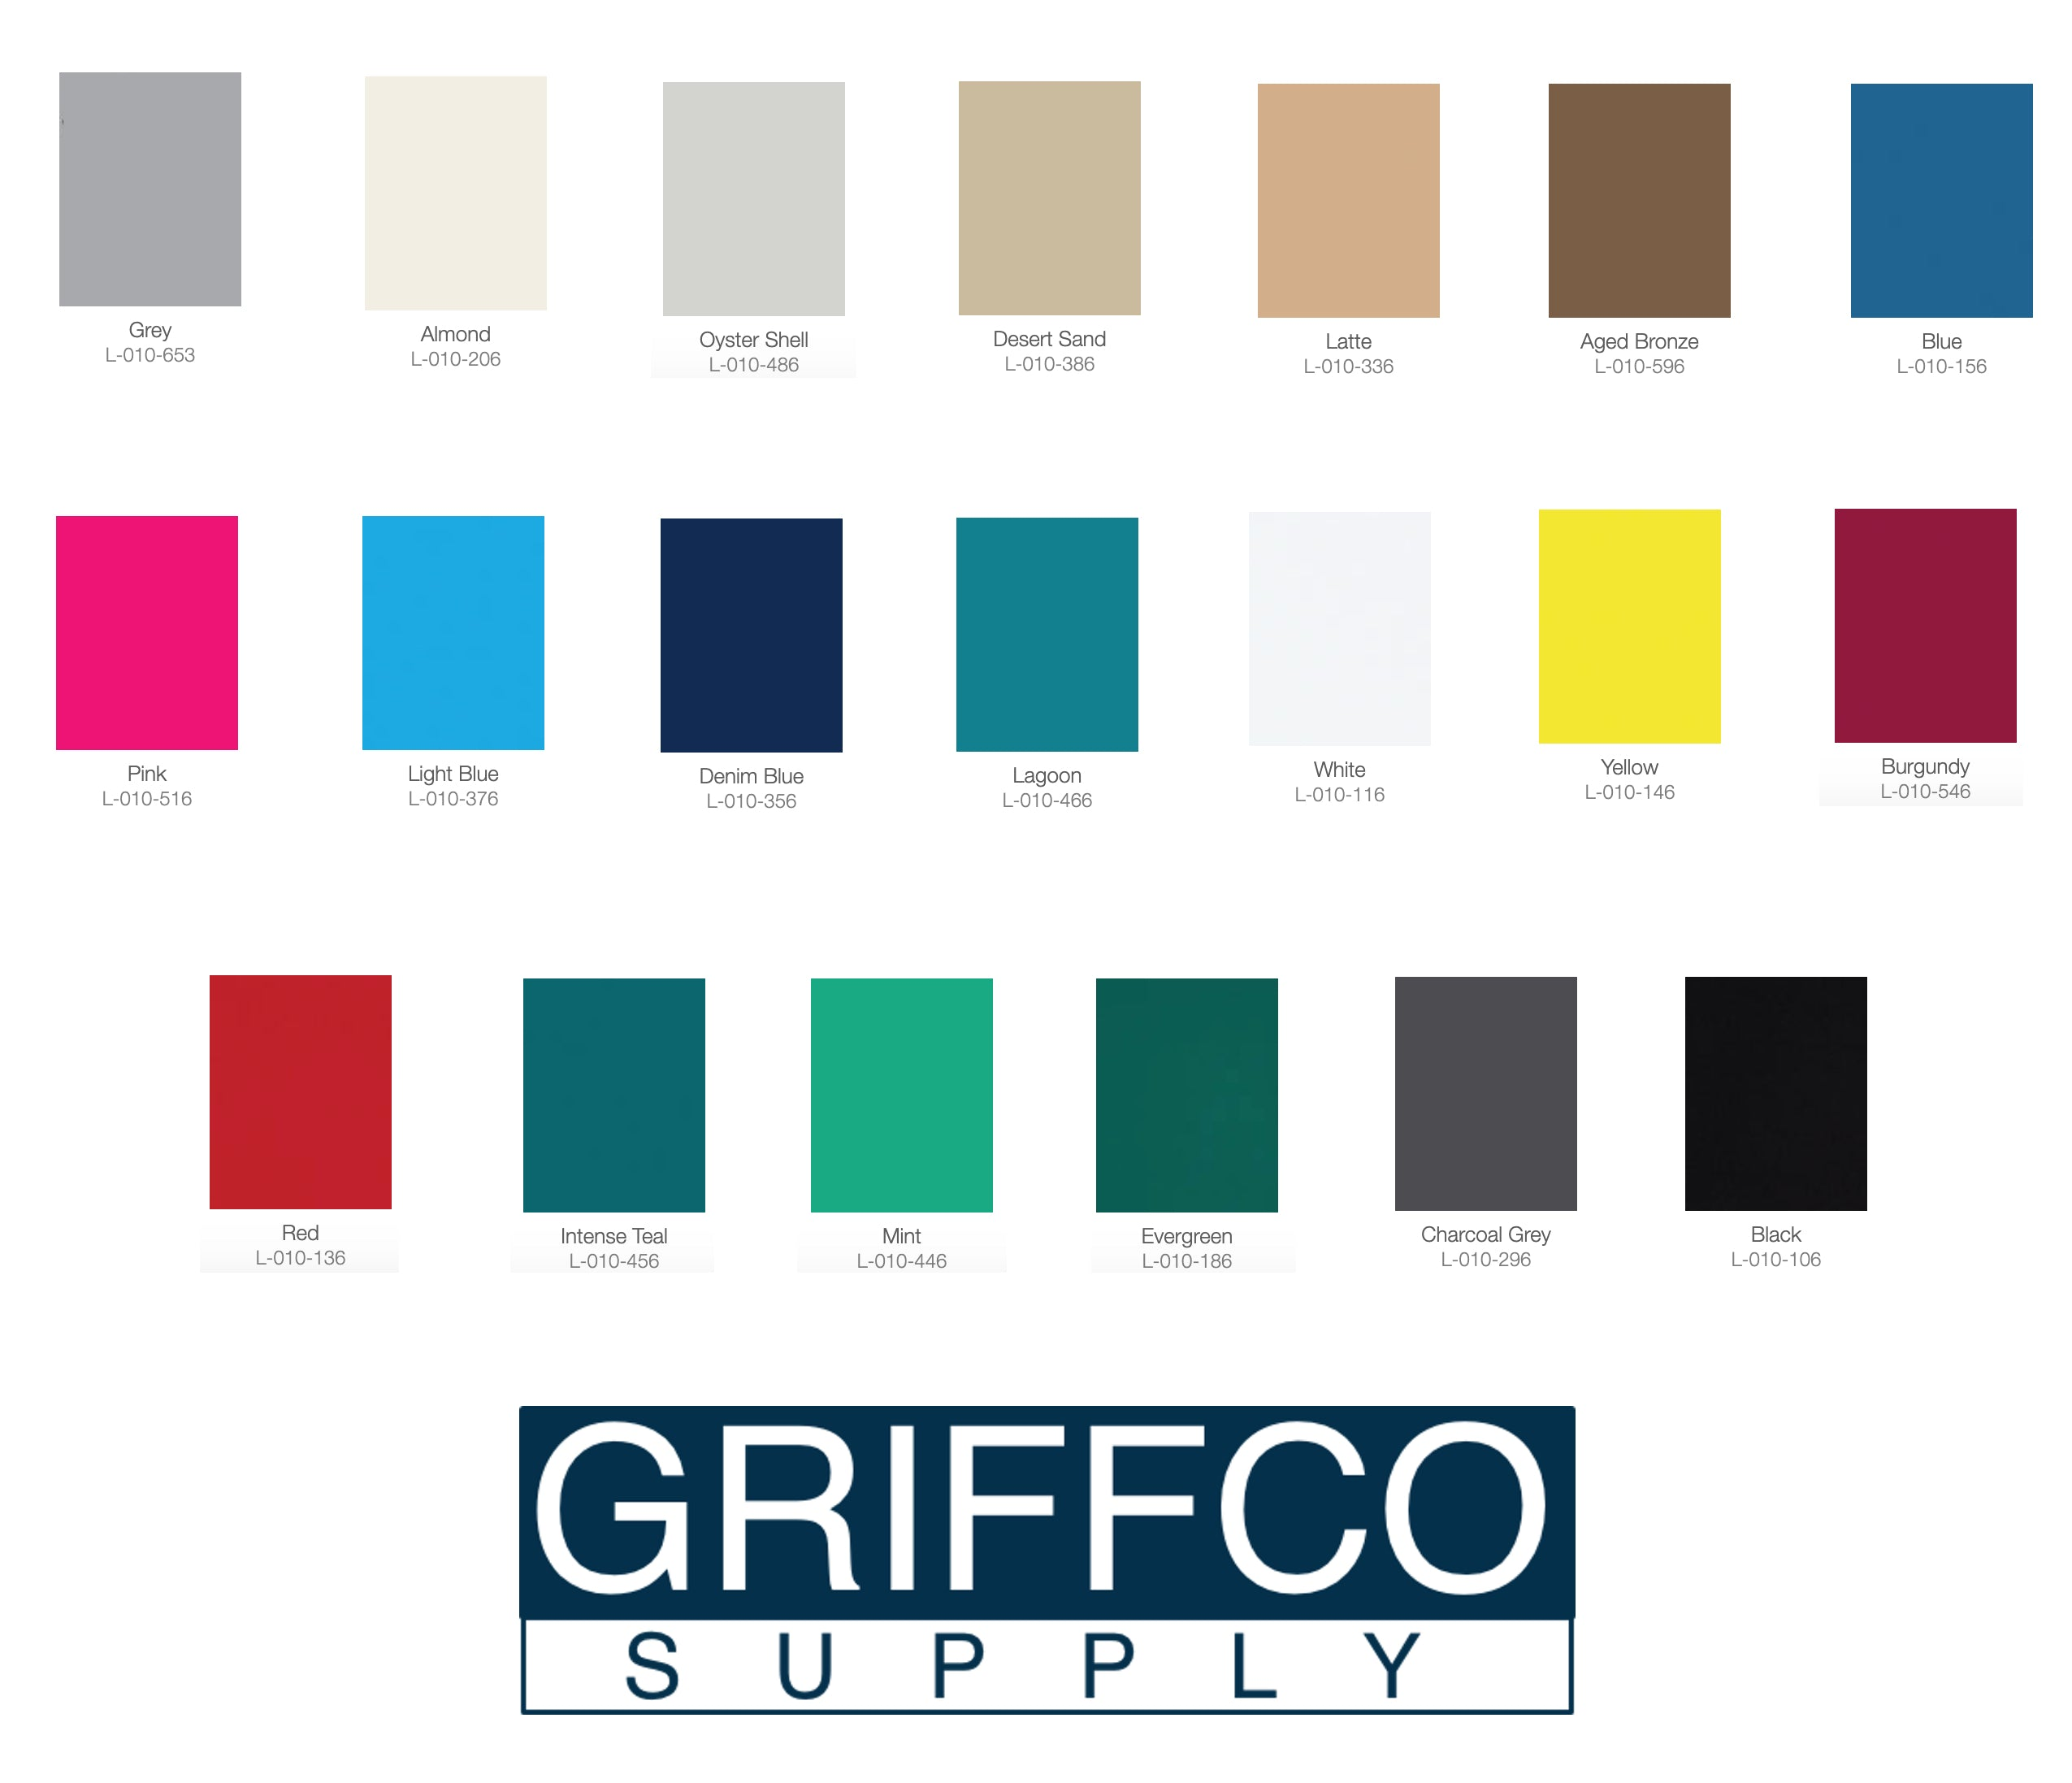 Griffco Supply ADA Grade 2 Braille background color options